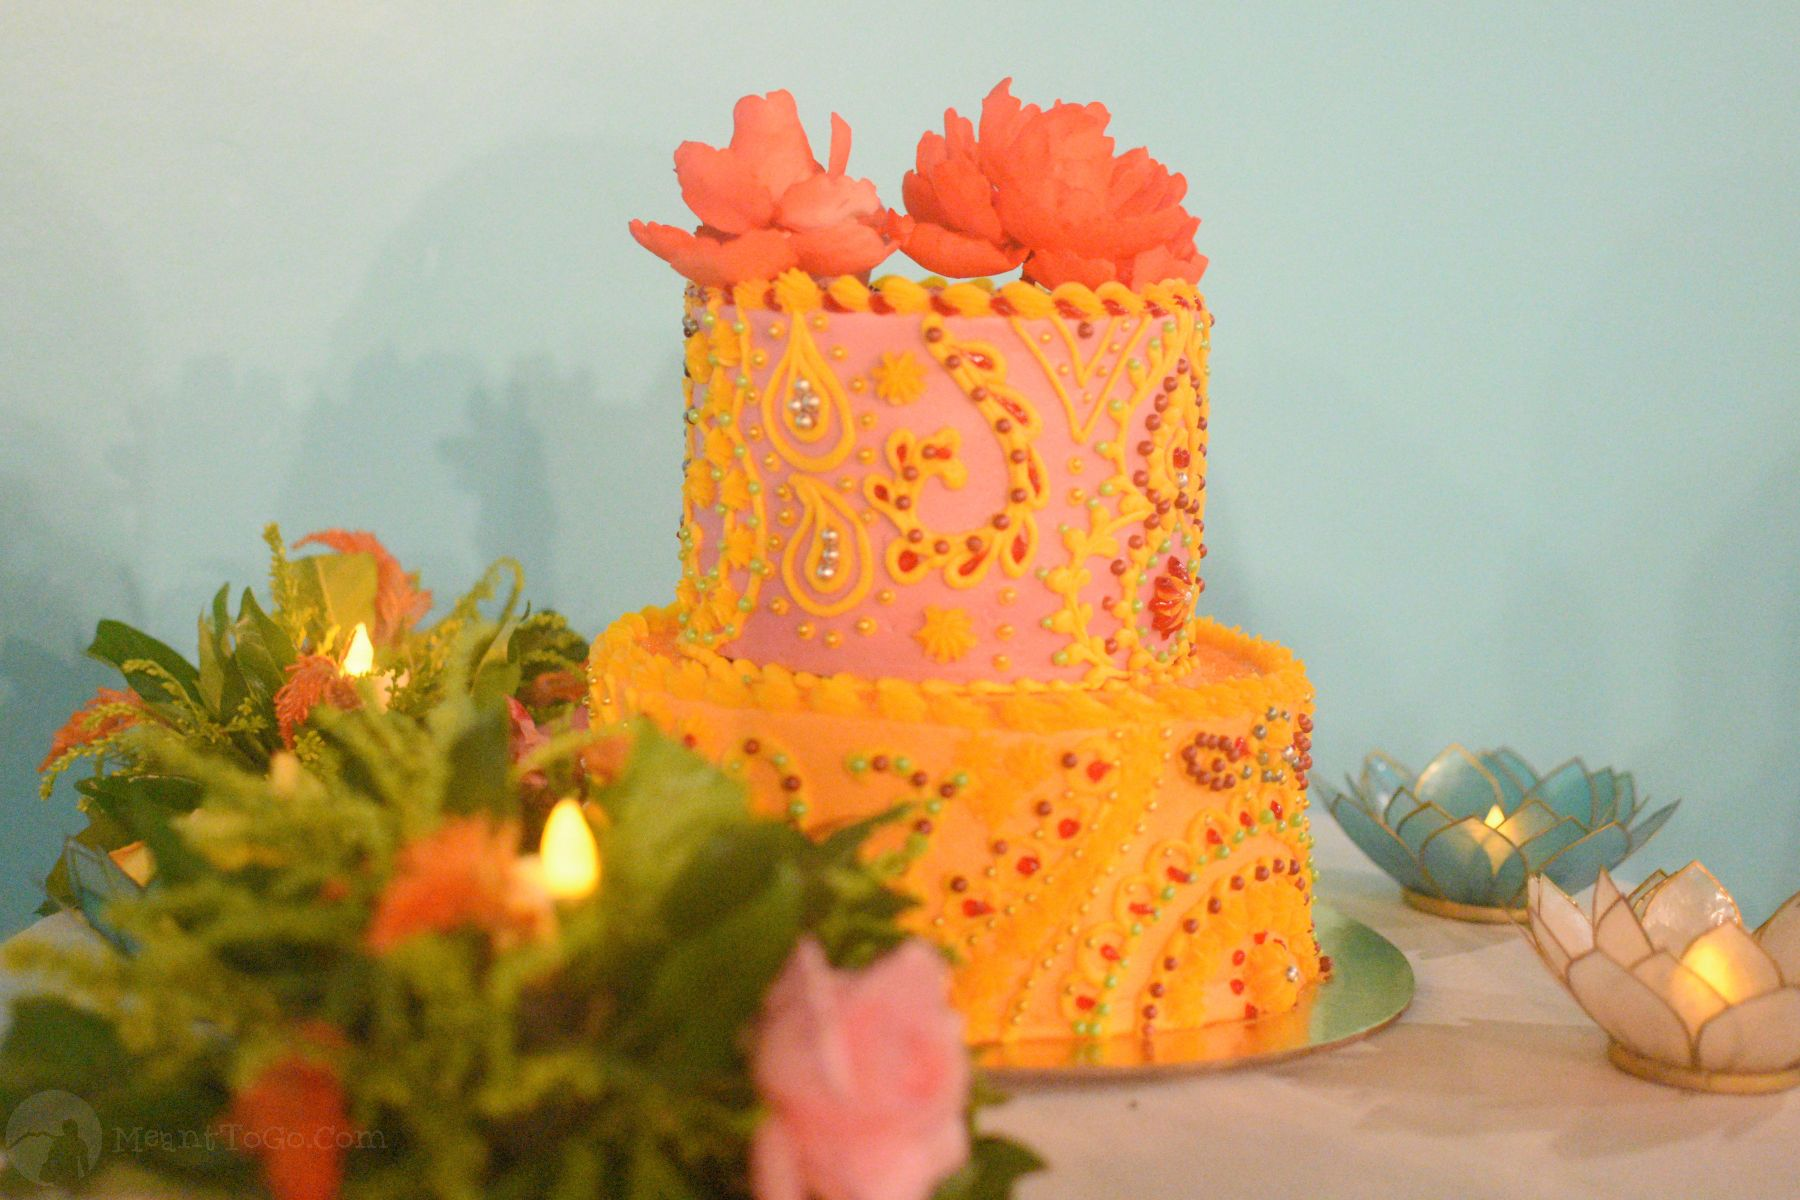 Cake served at 5S Box Indian Restaurant in Davao City